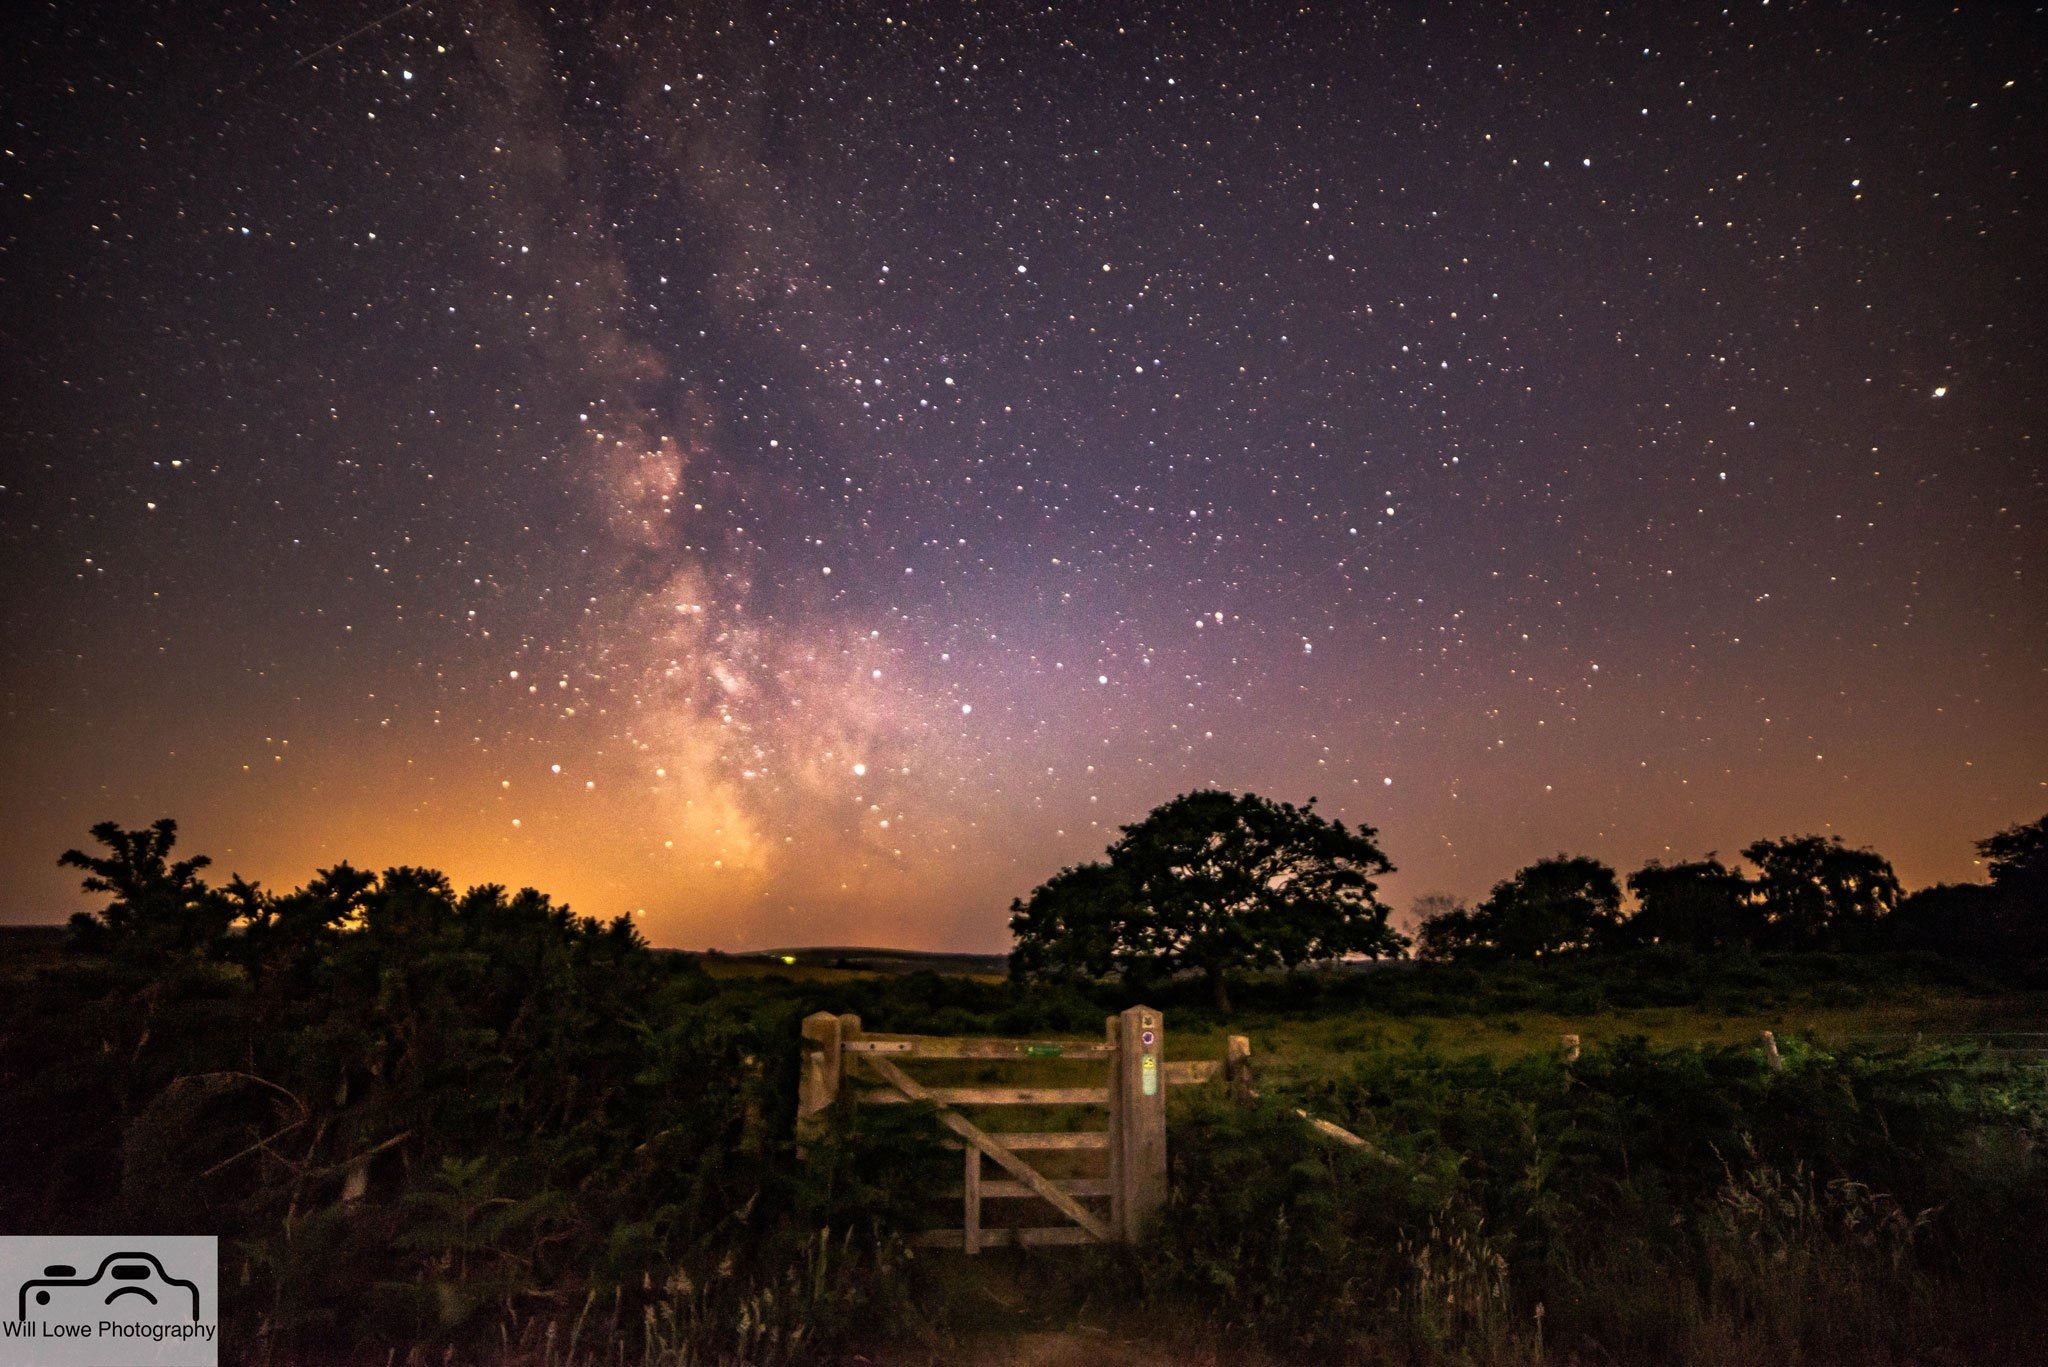 Gateway to the Stars by Will Lowe Photography